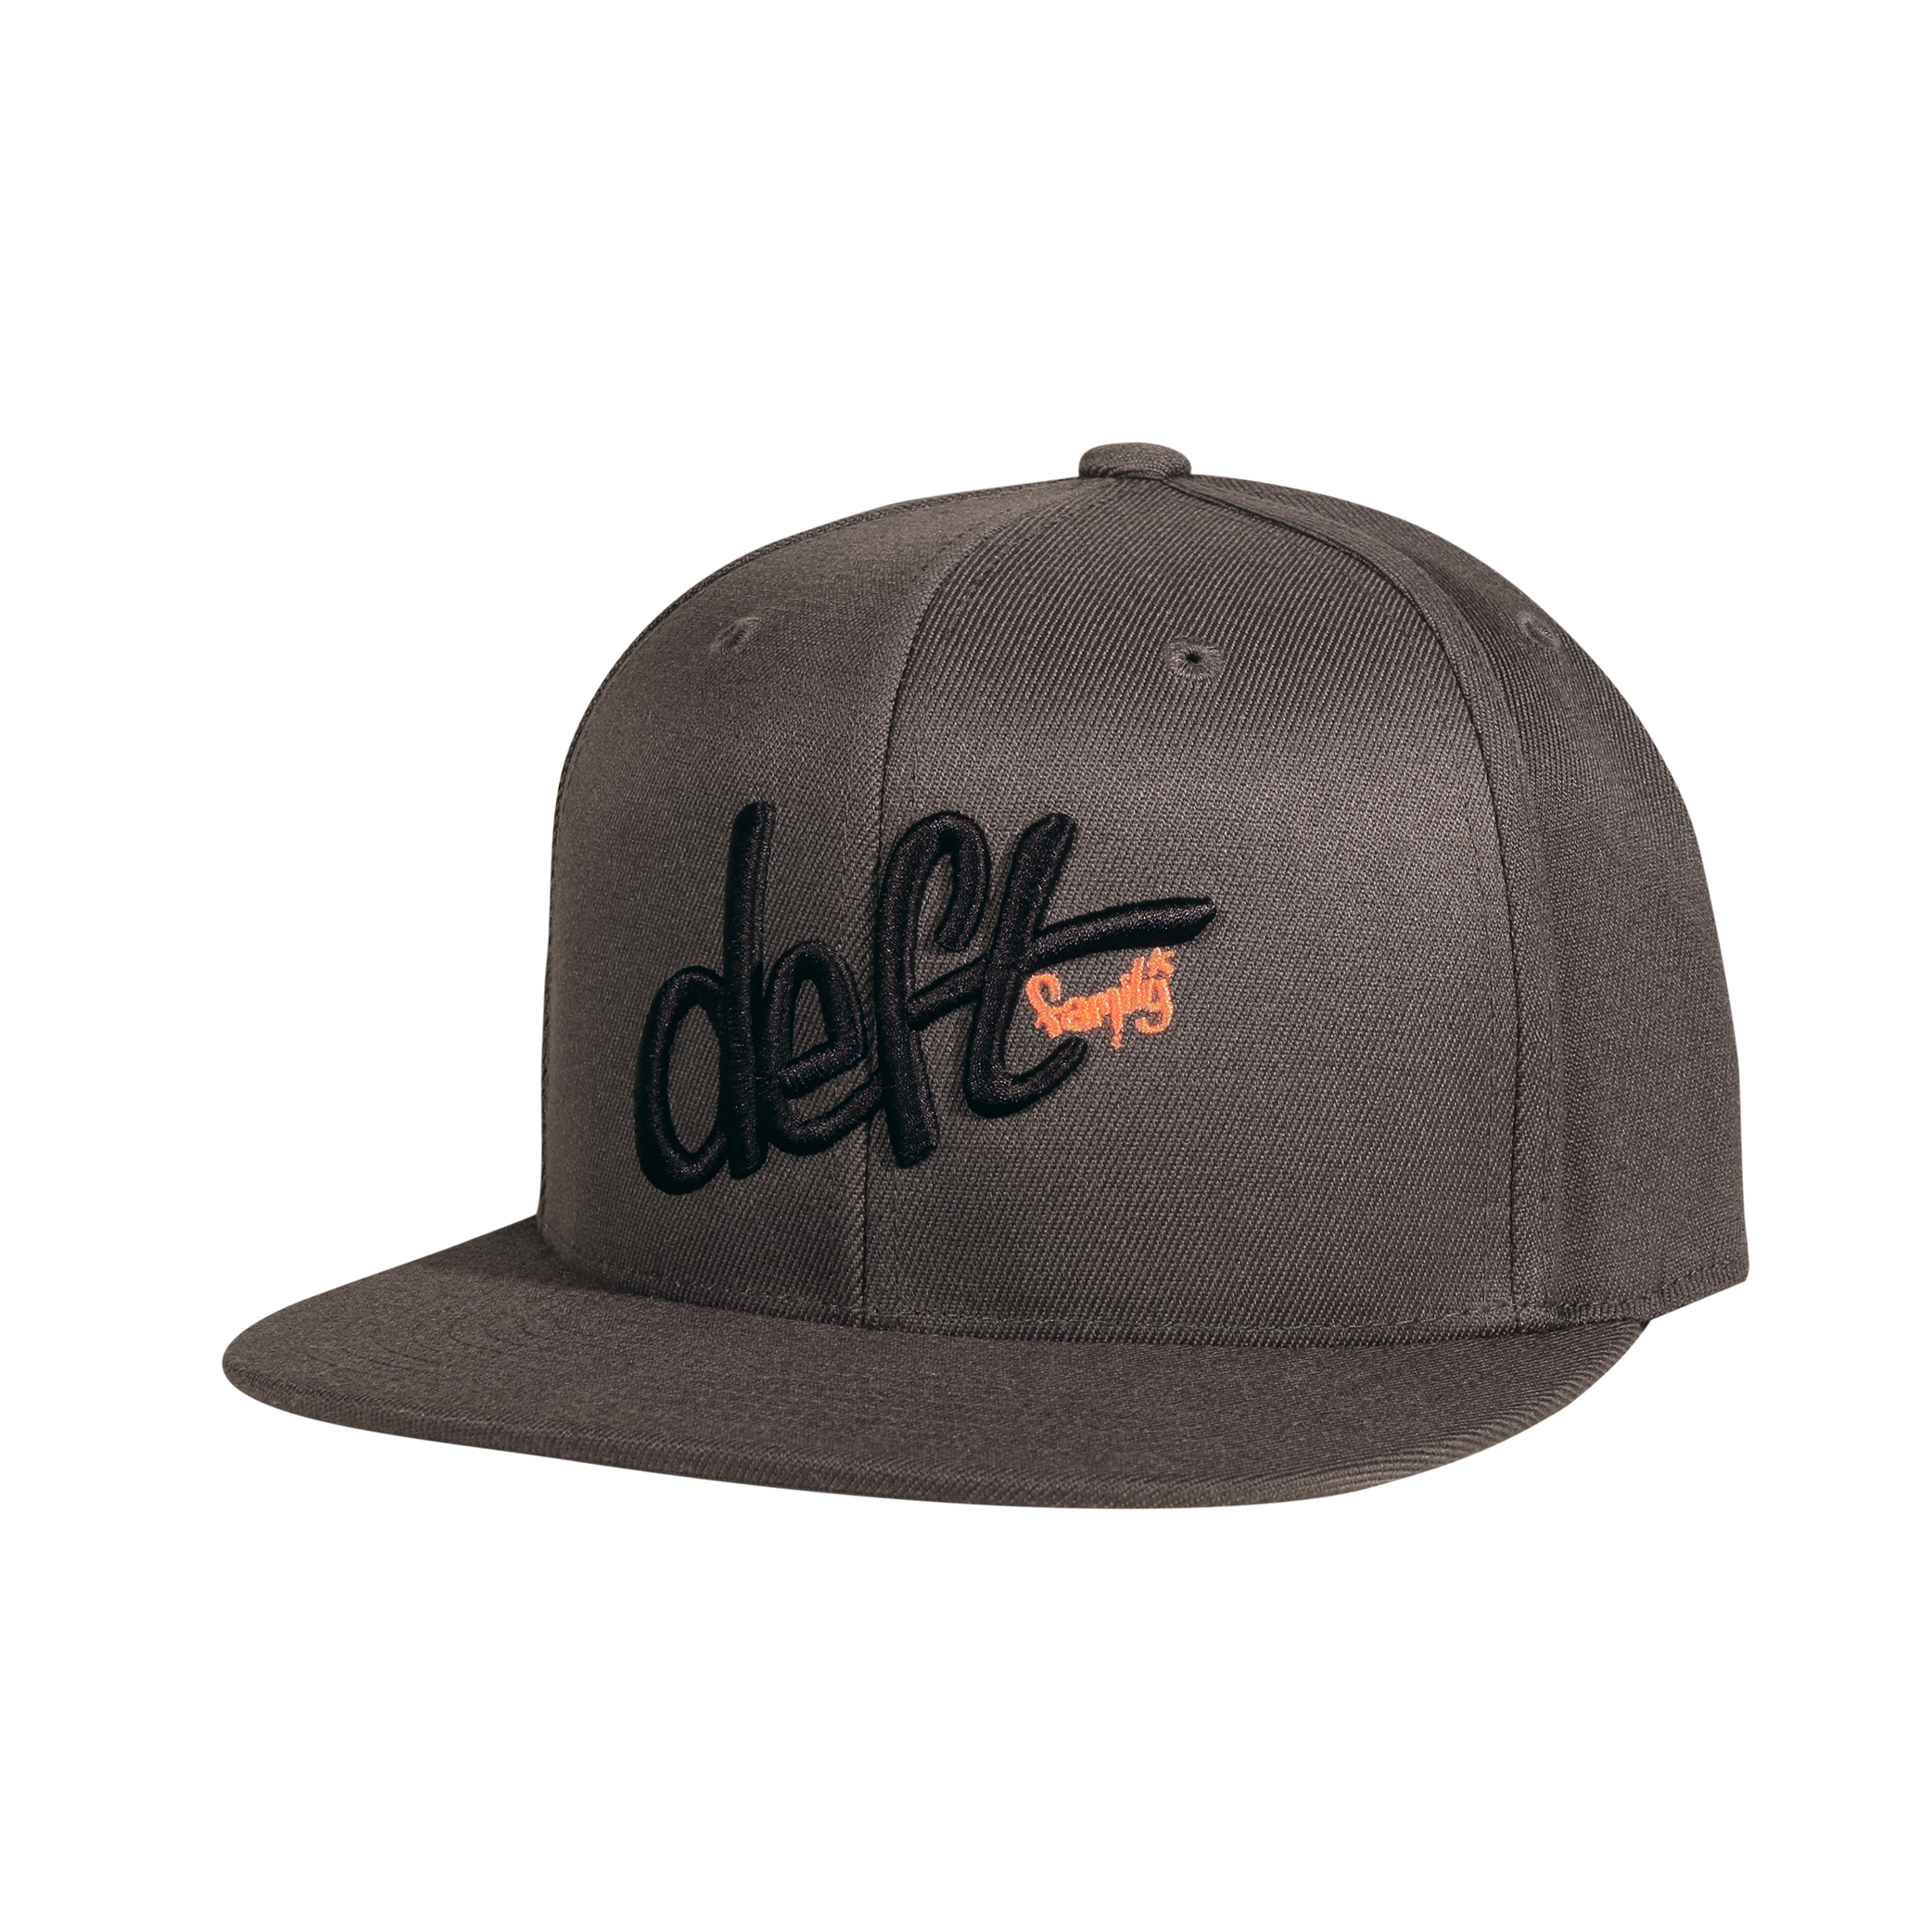 LOGO SNAP BACK HAT. DARK GRAY